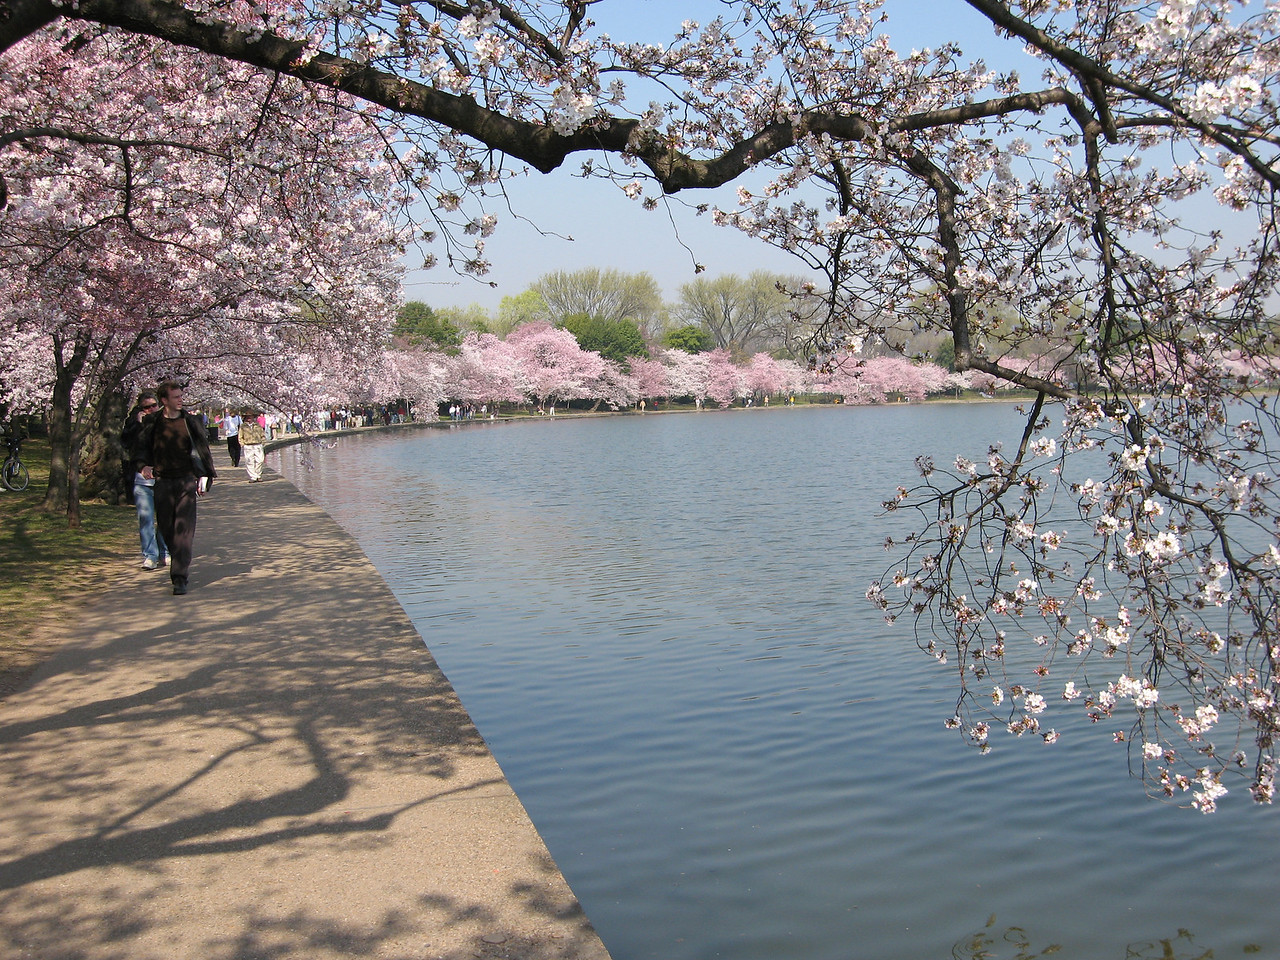 Cherry blossoms around Tidal Pool -  Washington, DC